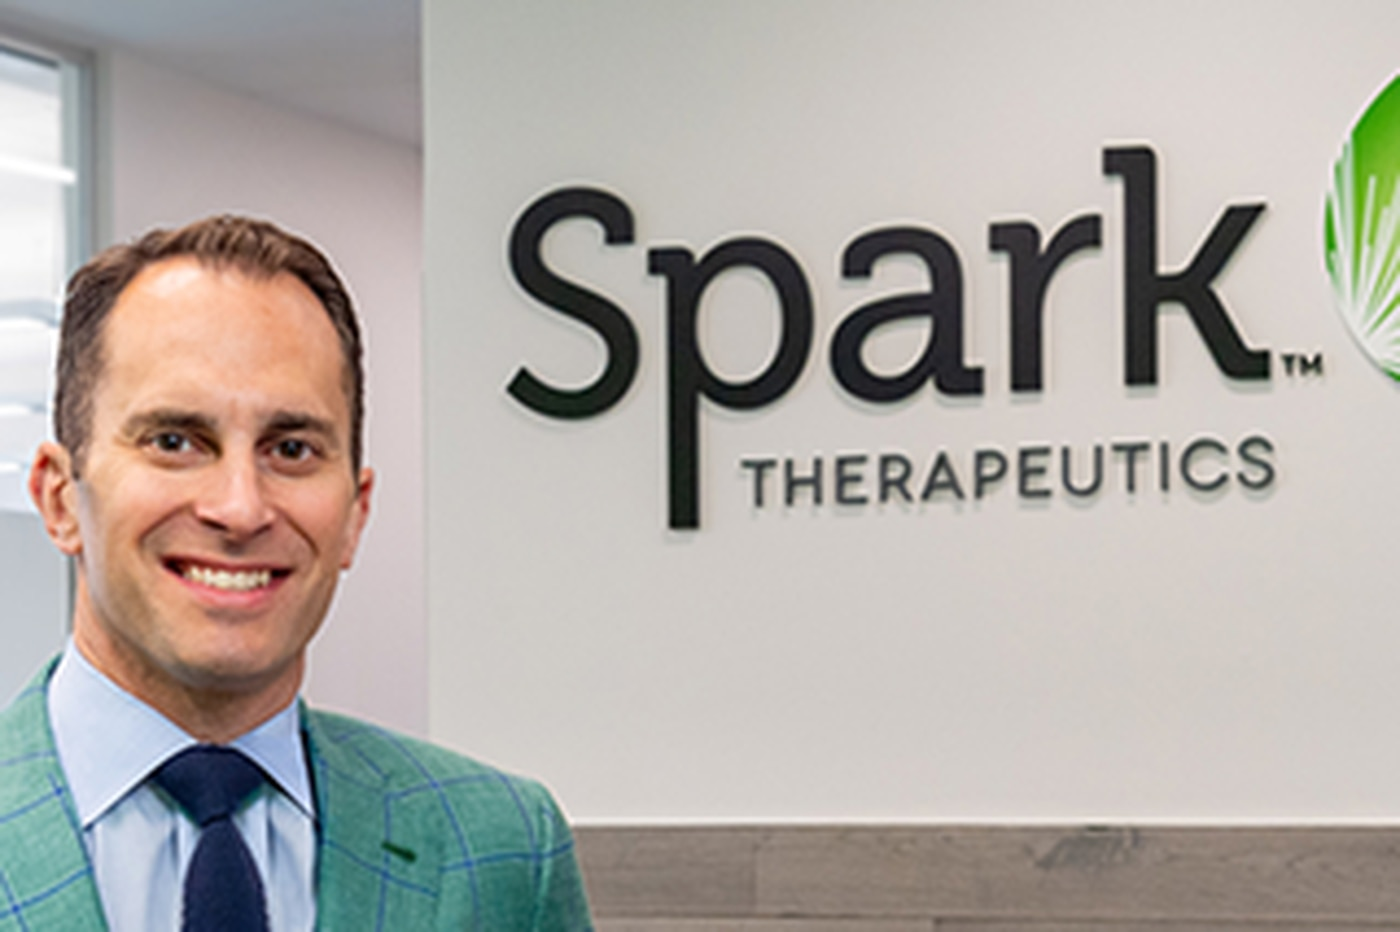 Gene therapy under review: Spark Therapeutics sale delayed again